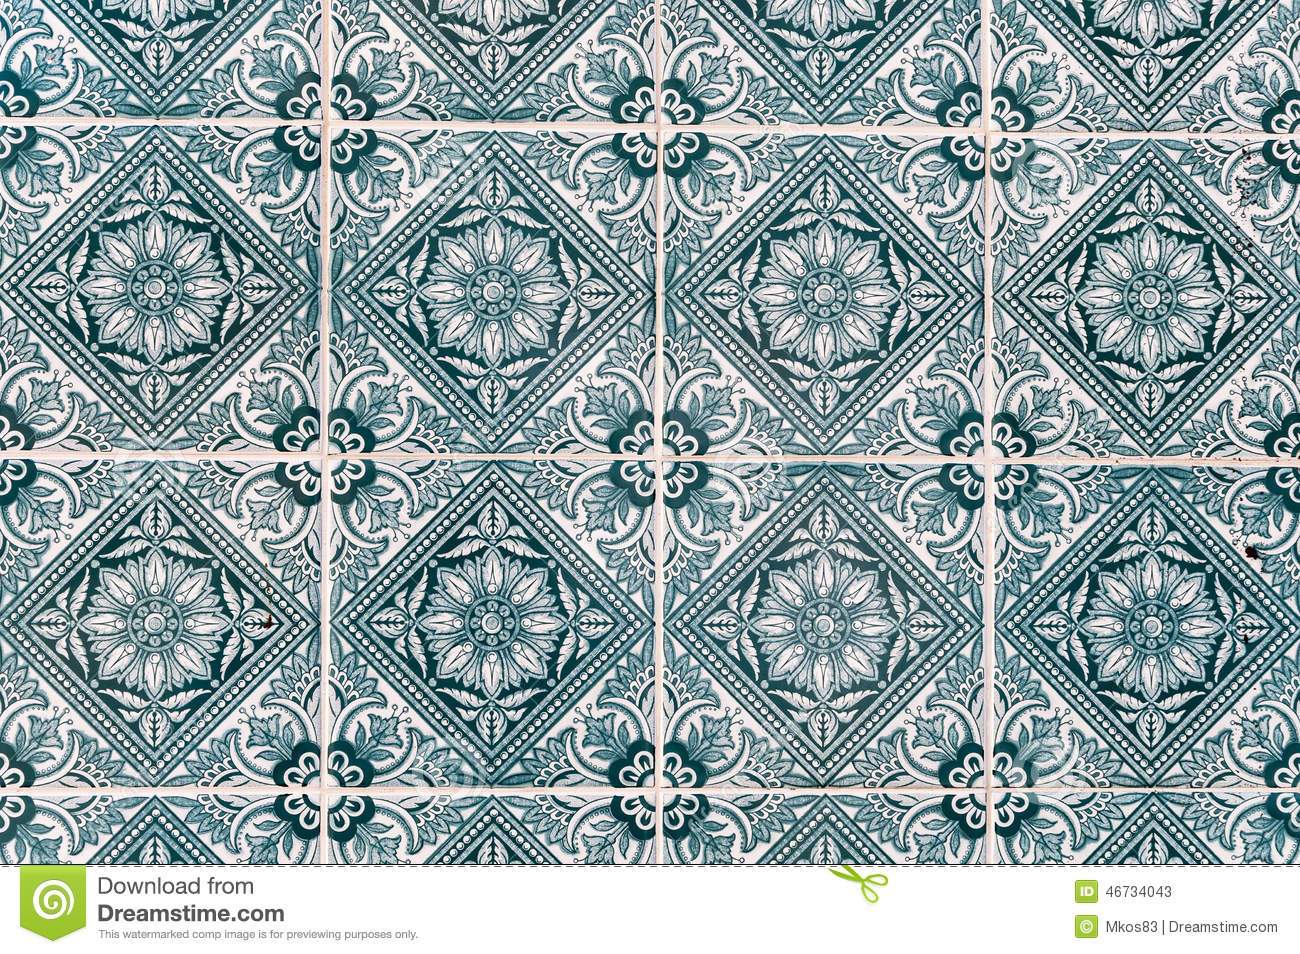 Background made of portuguese ceramic tiles called azulejos stock background made of portuguese ceramic tiles called azulejos dailygadgetfo Gallery